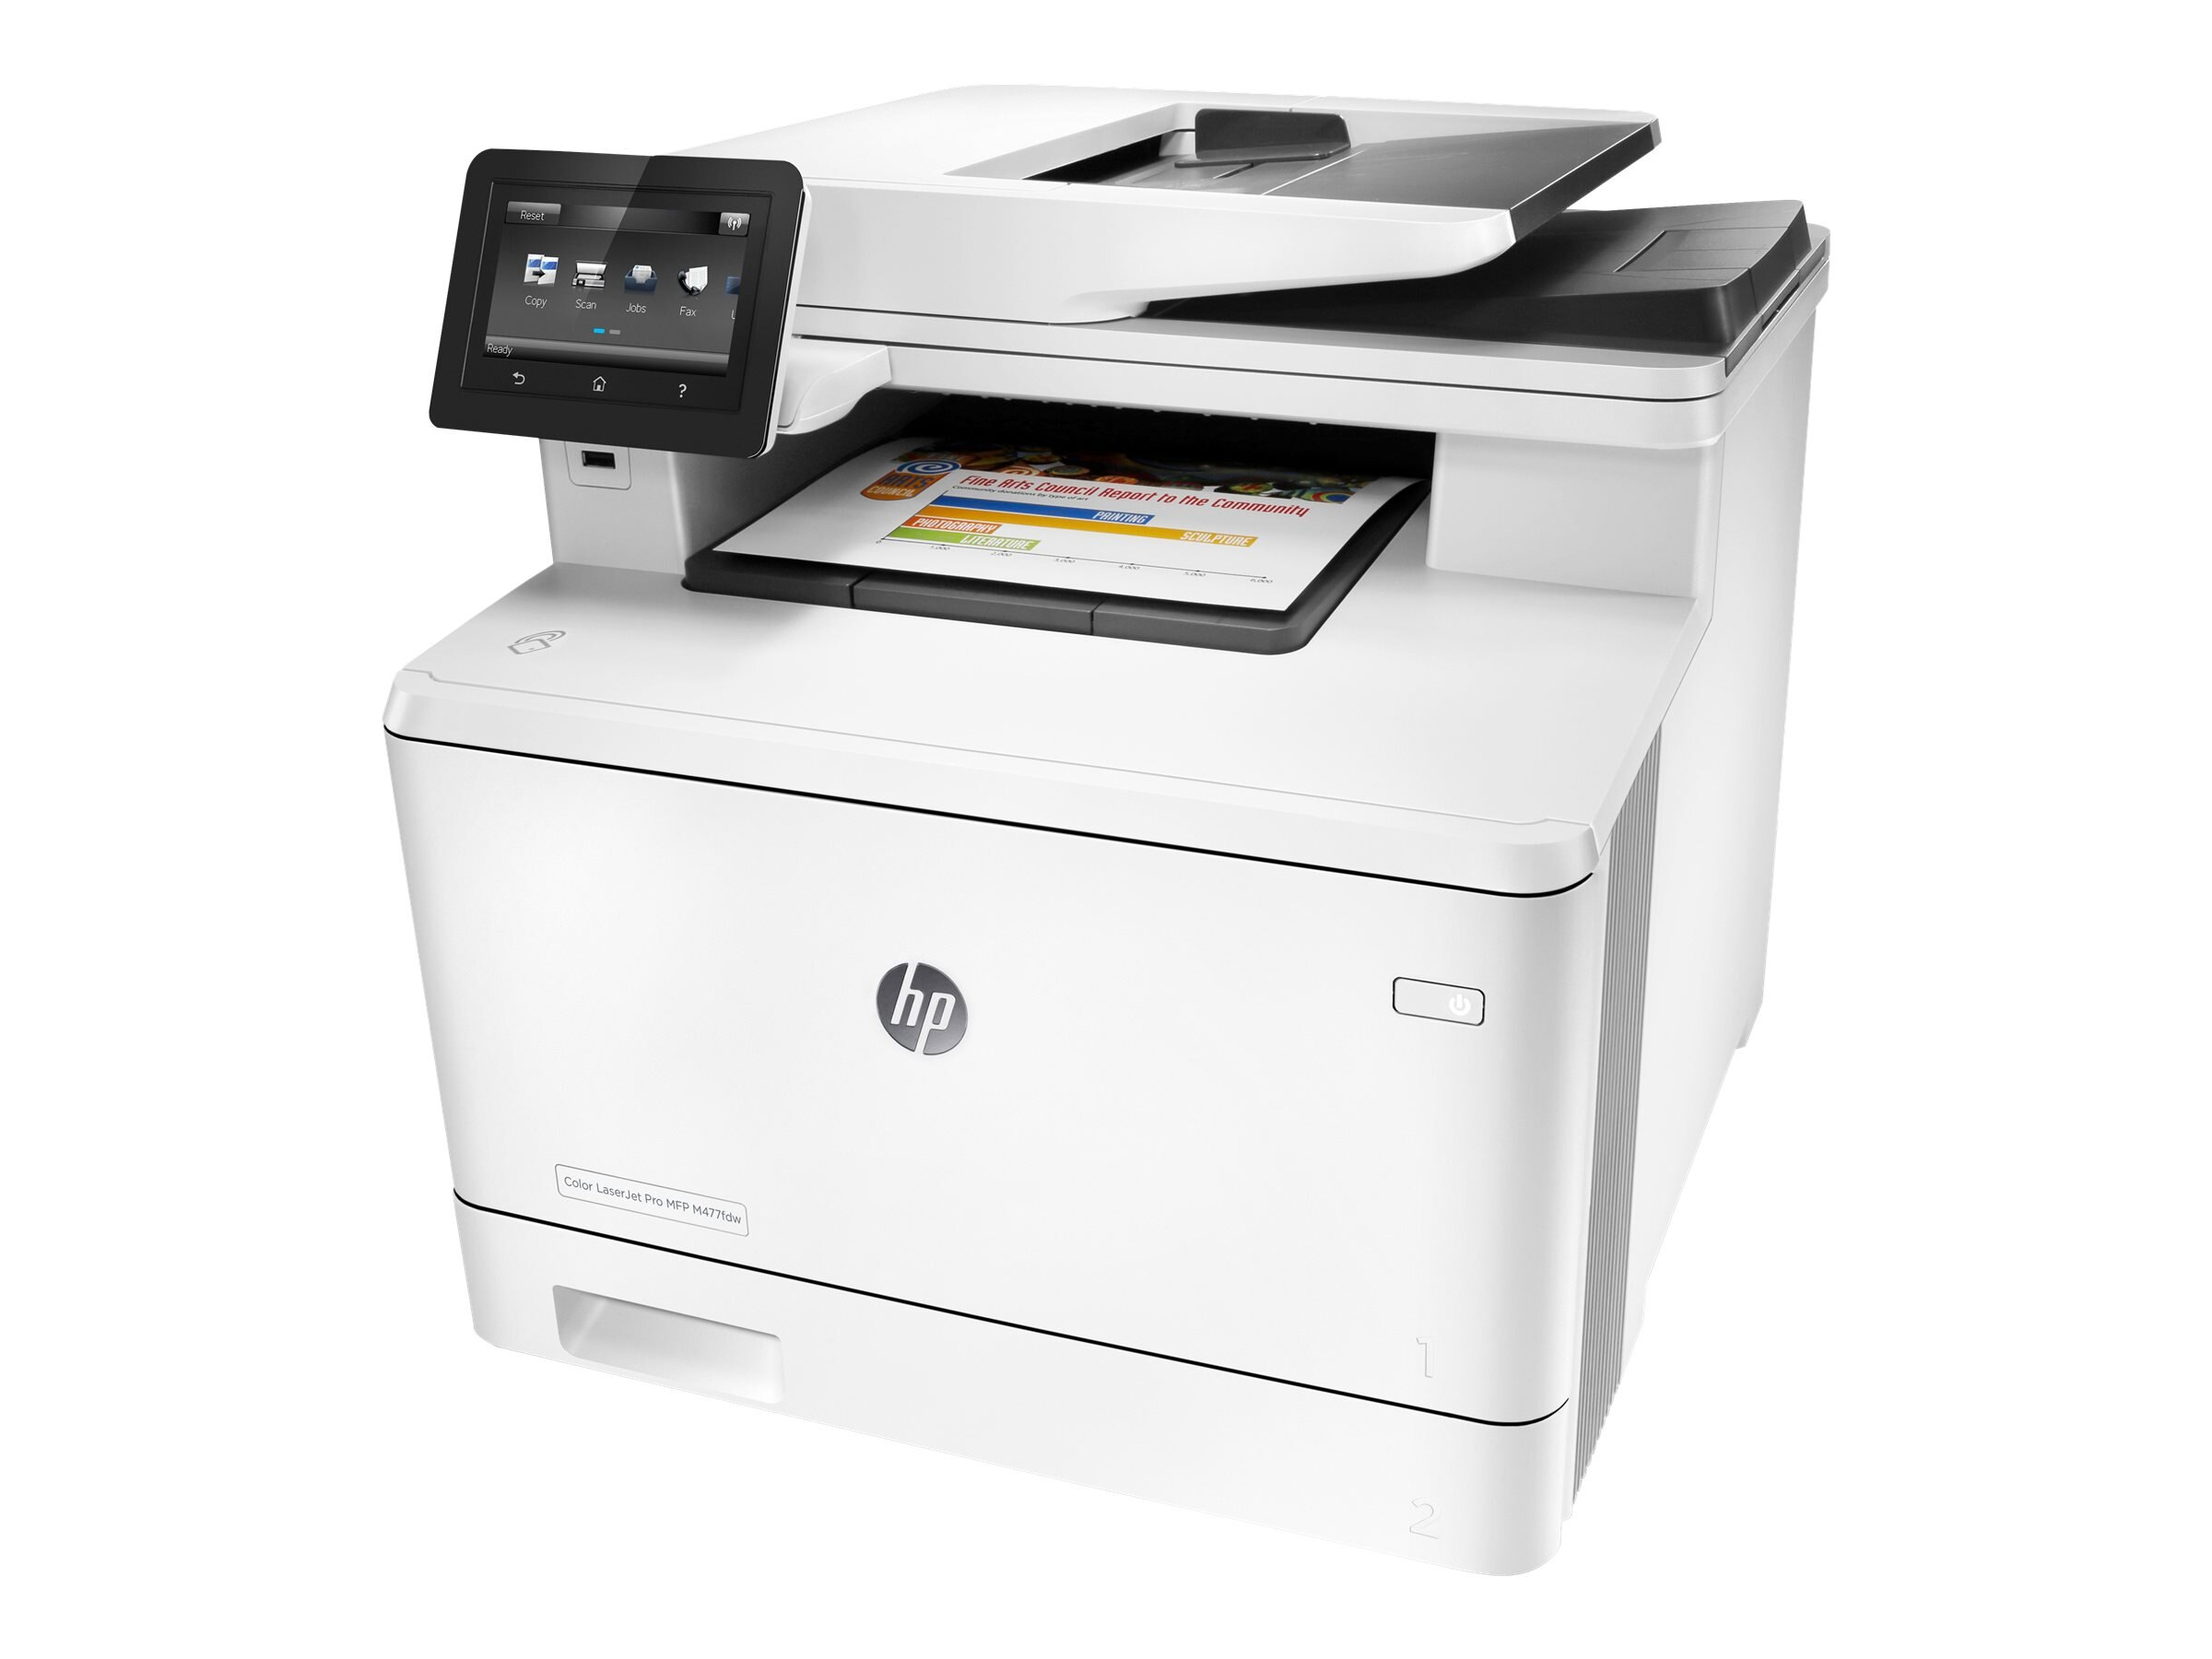 HP 4335 MFP DRIVERS FOR WINDOWS DOWNLOAD